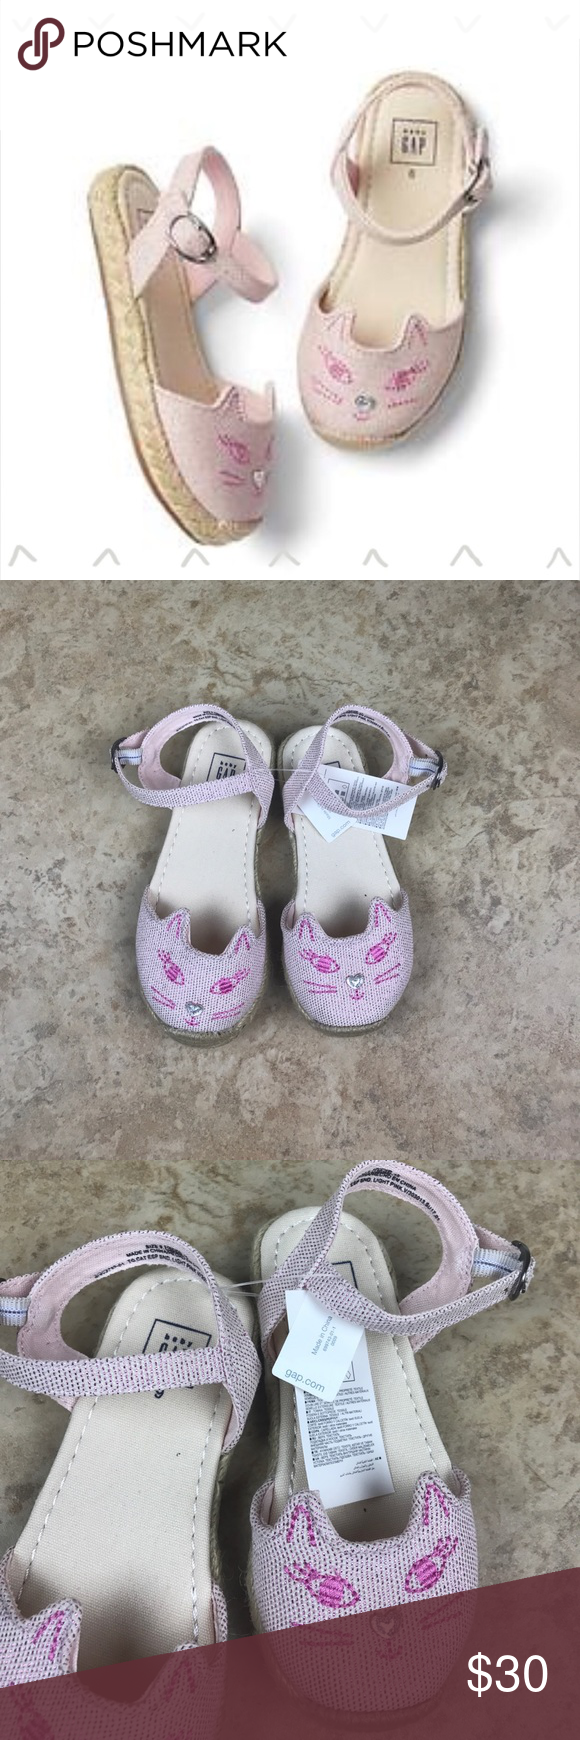 084df59b163b  NWT  Baby Gap light pink espadrille cat sandals  NWT  Baby GAP light pink  cat espadrille sandals in size 9. So cute and perfect for year round wear!